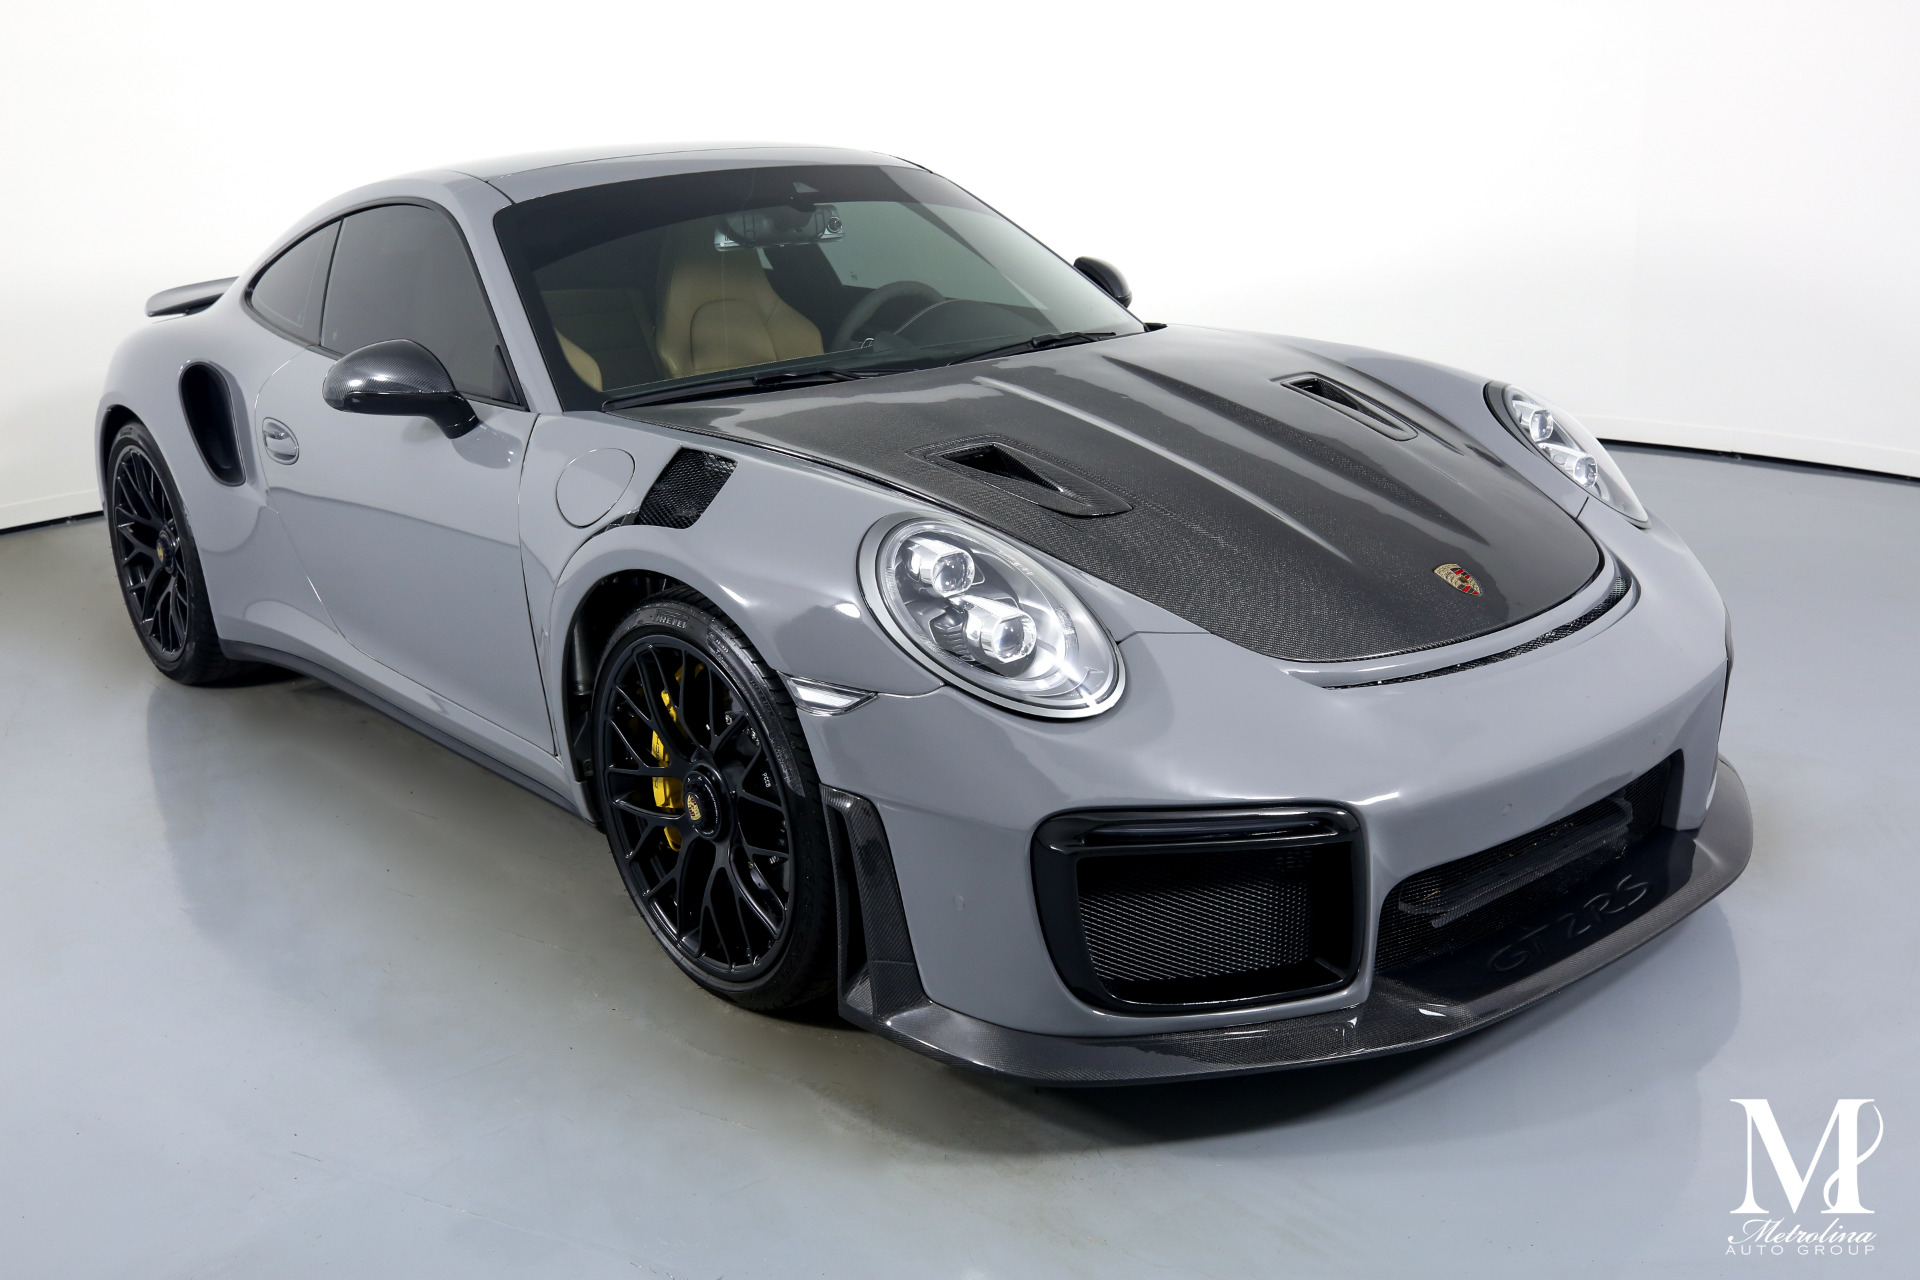 Used 2014 Porsche 911 Turbo S for sale Call for price at Metrolina Auto Group in Charlotte NC 28217 - 2